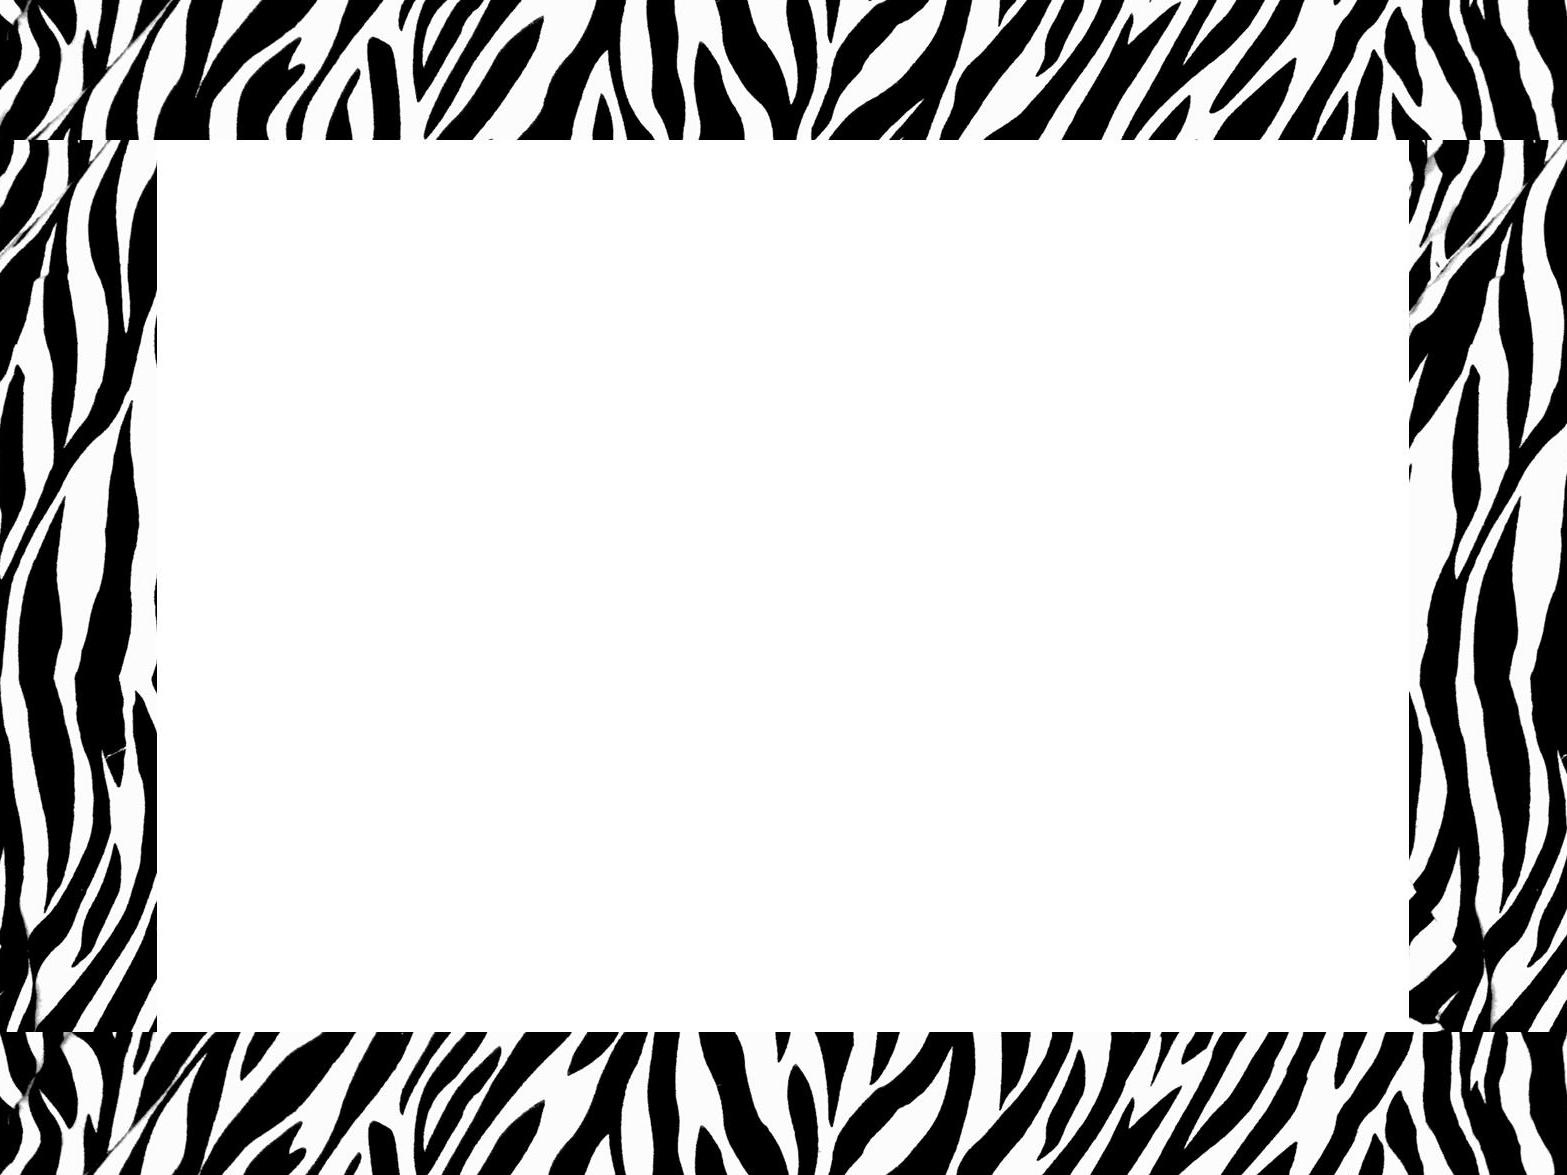 Free Free Zebra Borders, Download Free Clip Art, Free Clip Art On - Zebra Invitations Printable Free